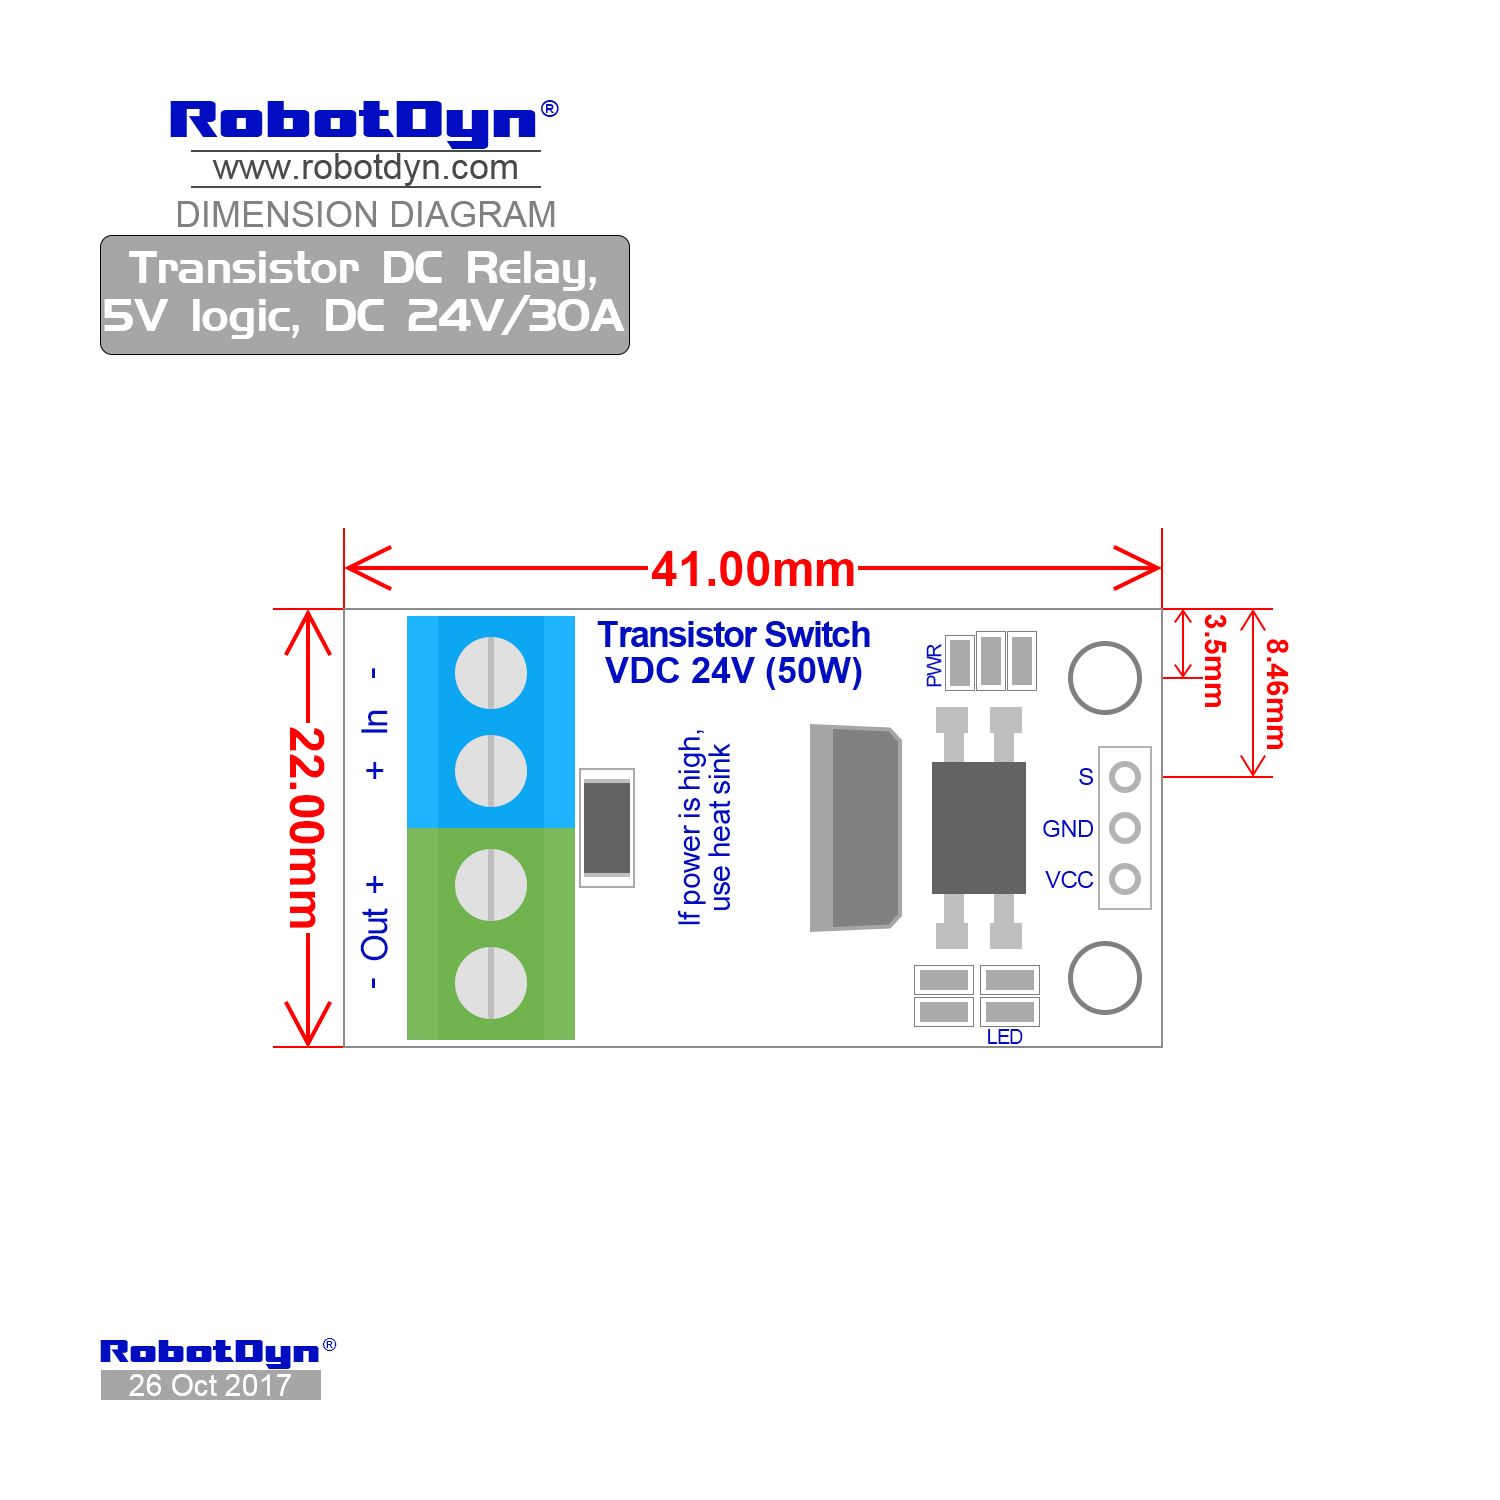 hight resolution of dimensions transistor mosfet dc switch relay 5v logic dc 24v 30a